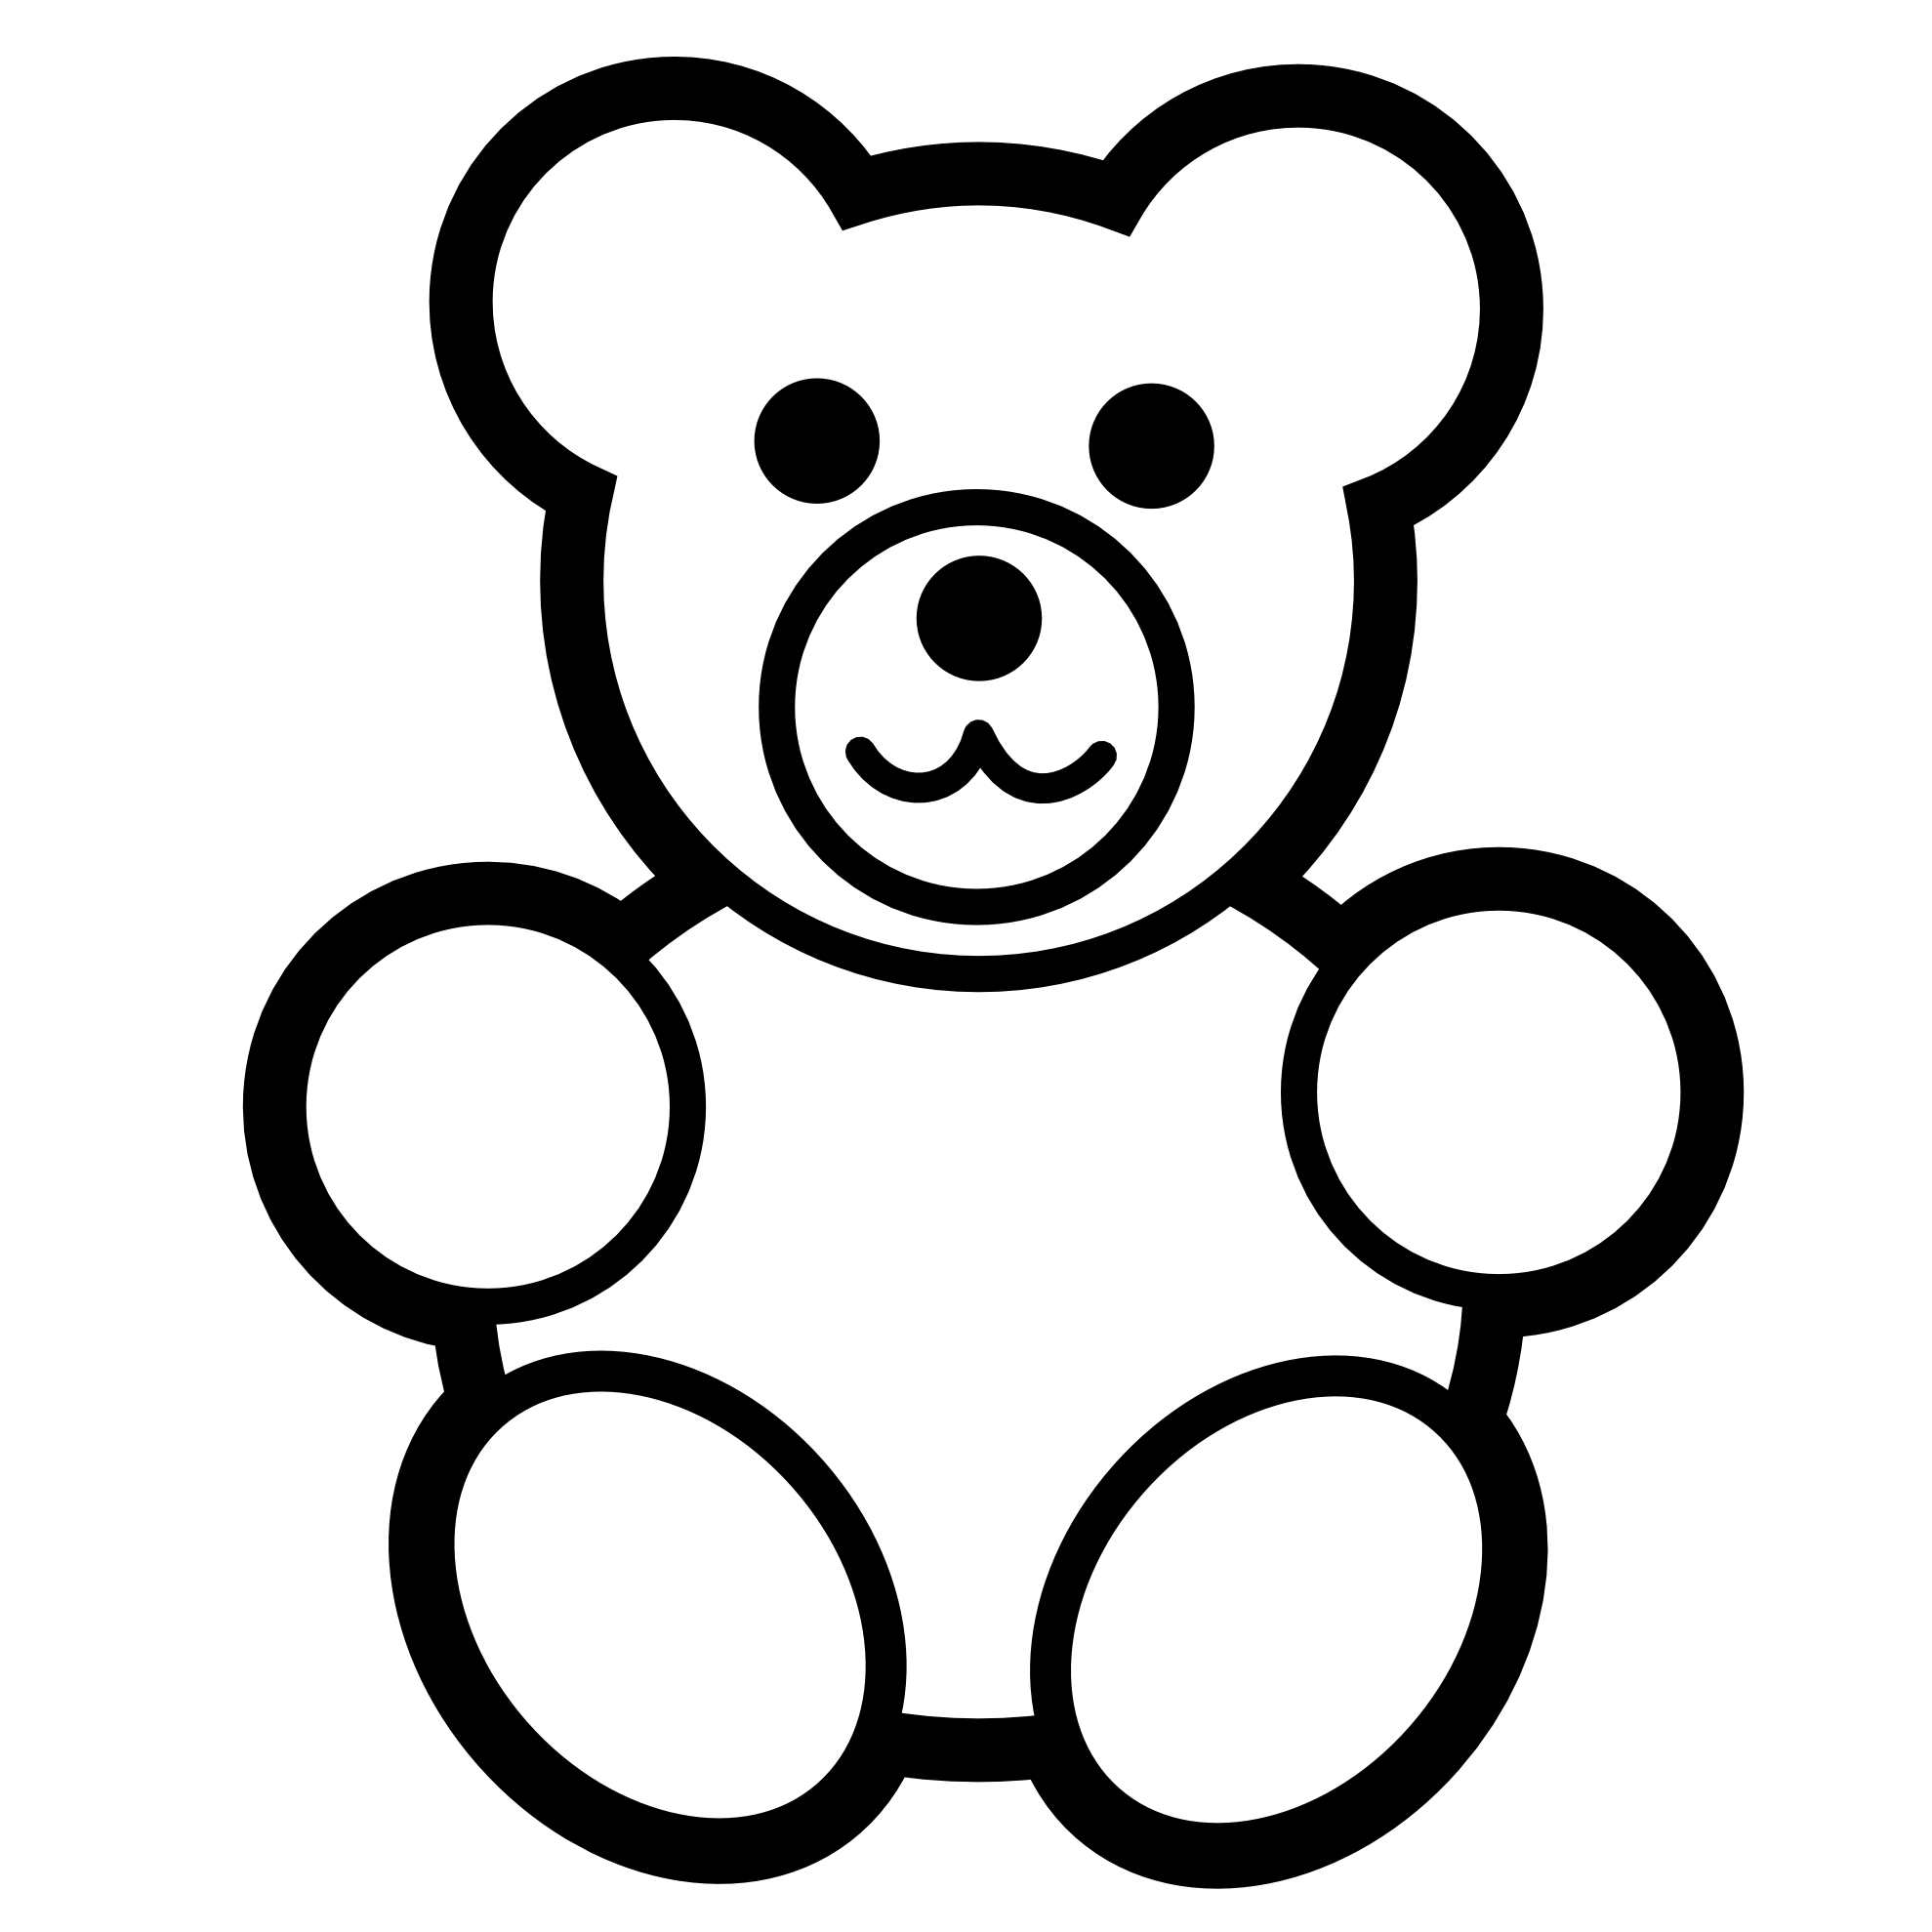 Toys clipart simple. Incredible ideas stuffed animal